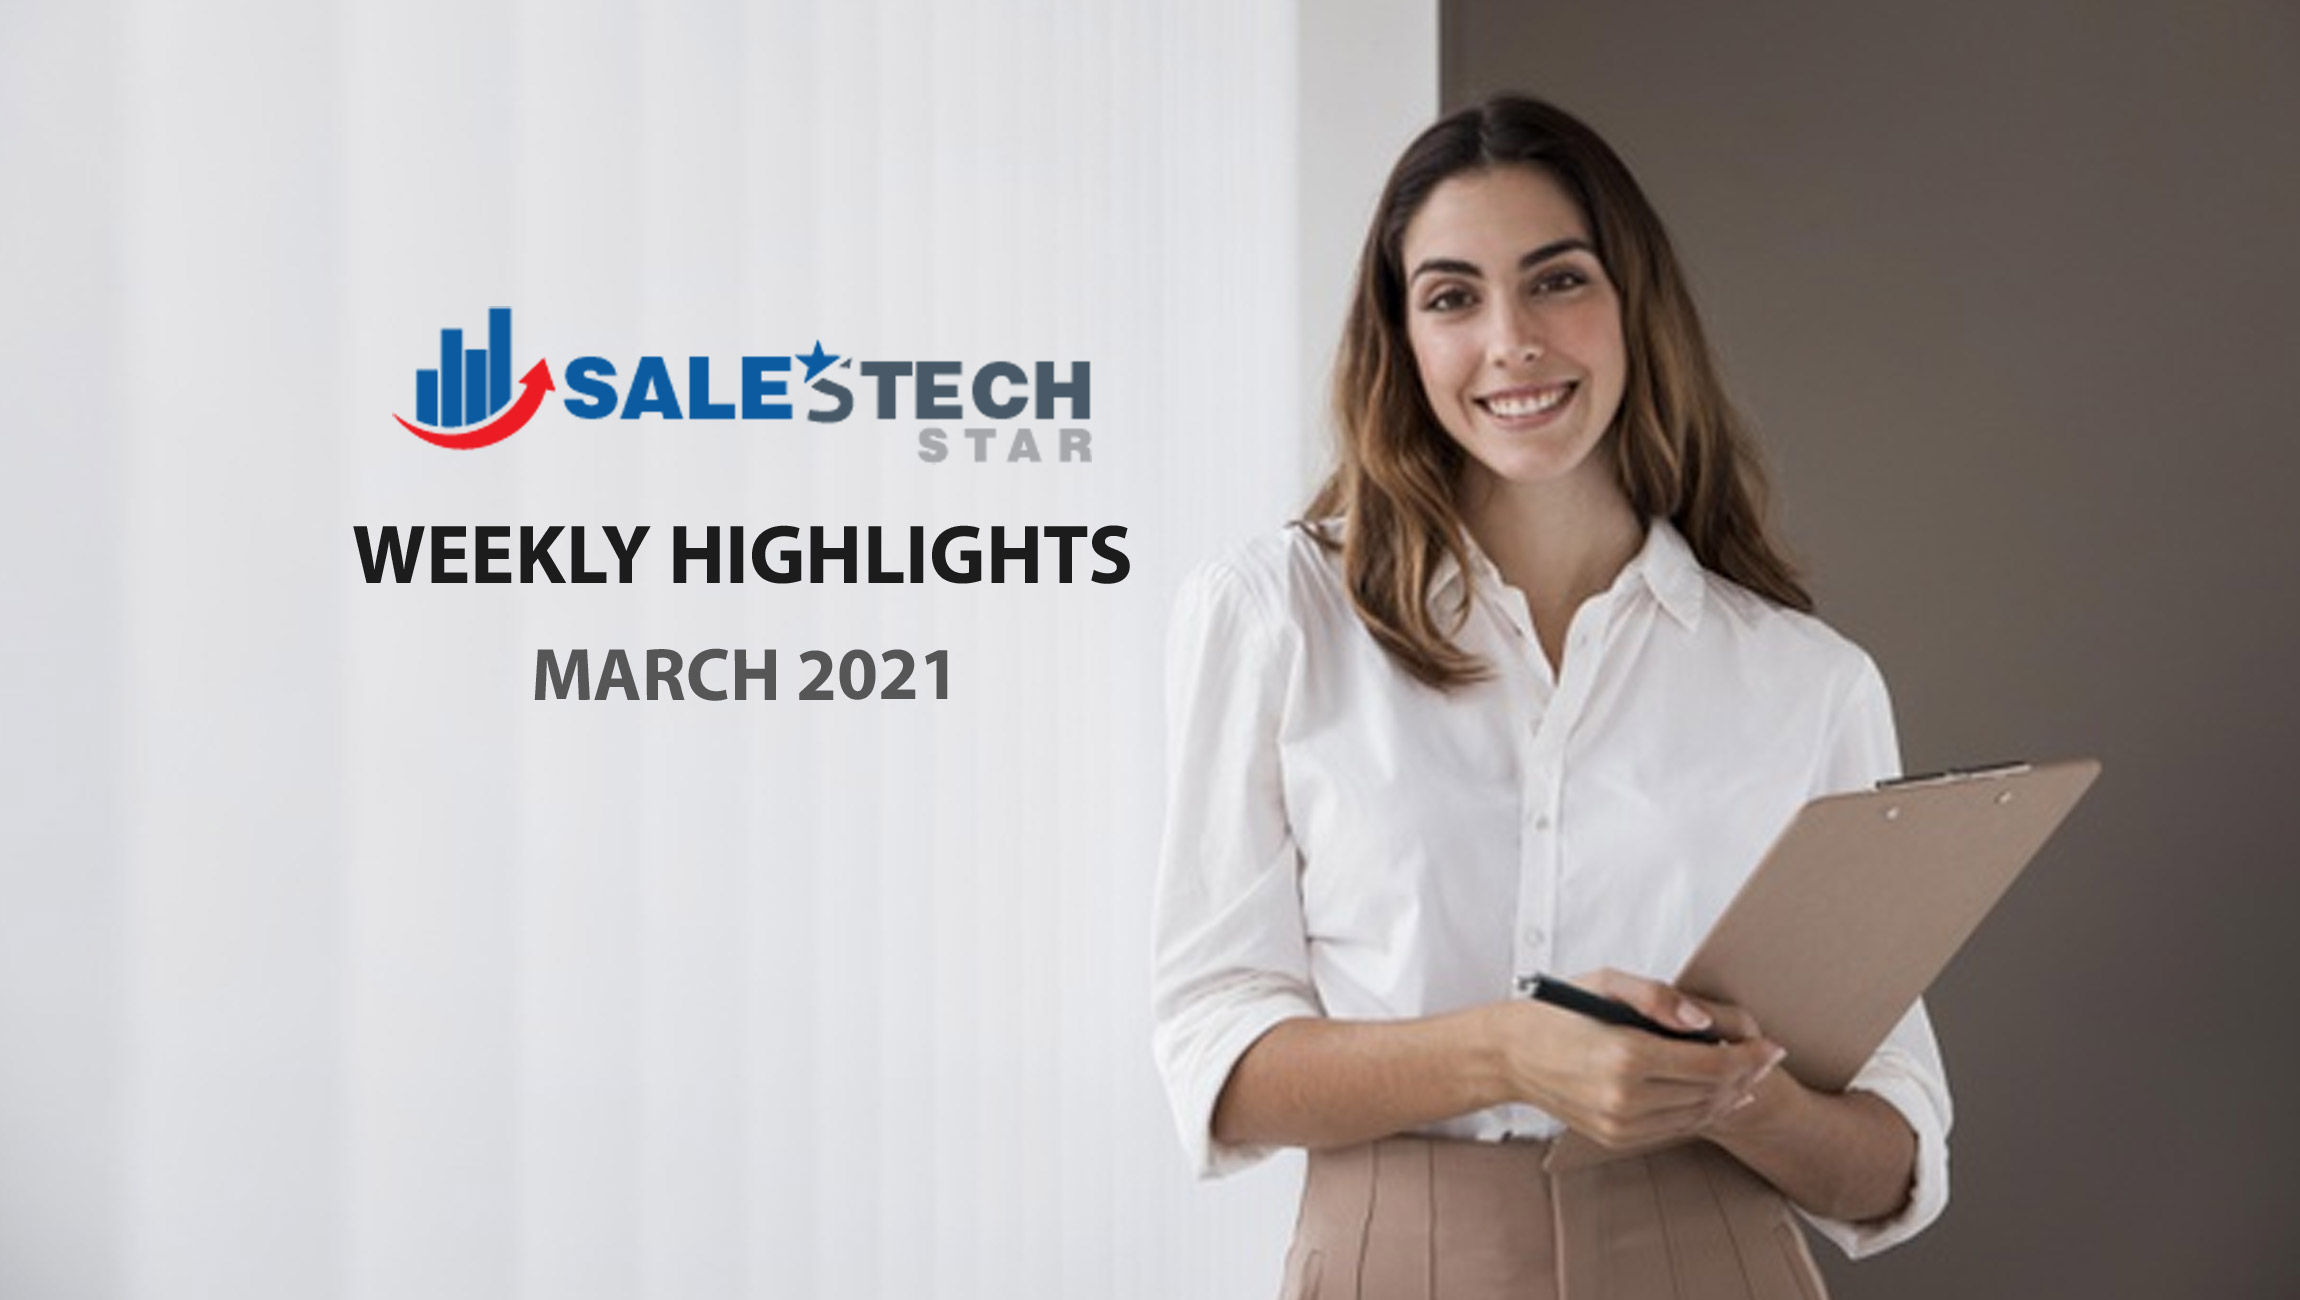 Sales Technology Highlights of The Week: 02-March-2021: Featuring ZoomInfo, IBM, Octopai, GoDaddy!